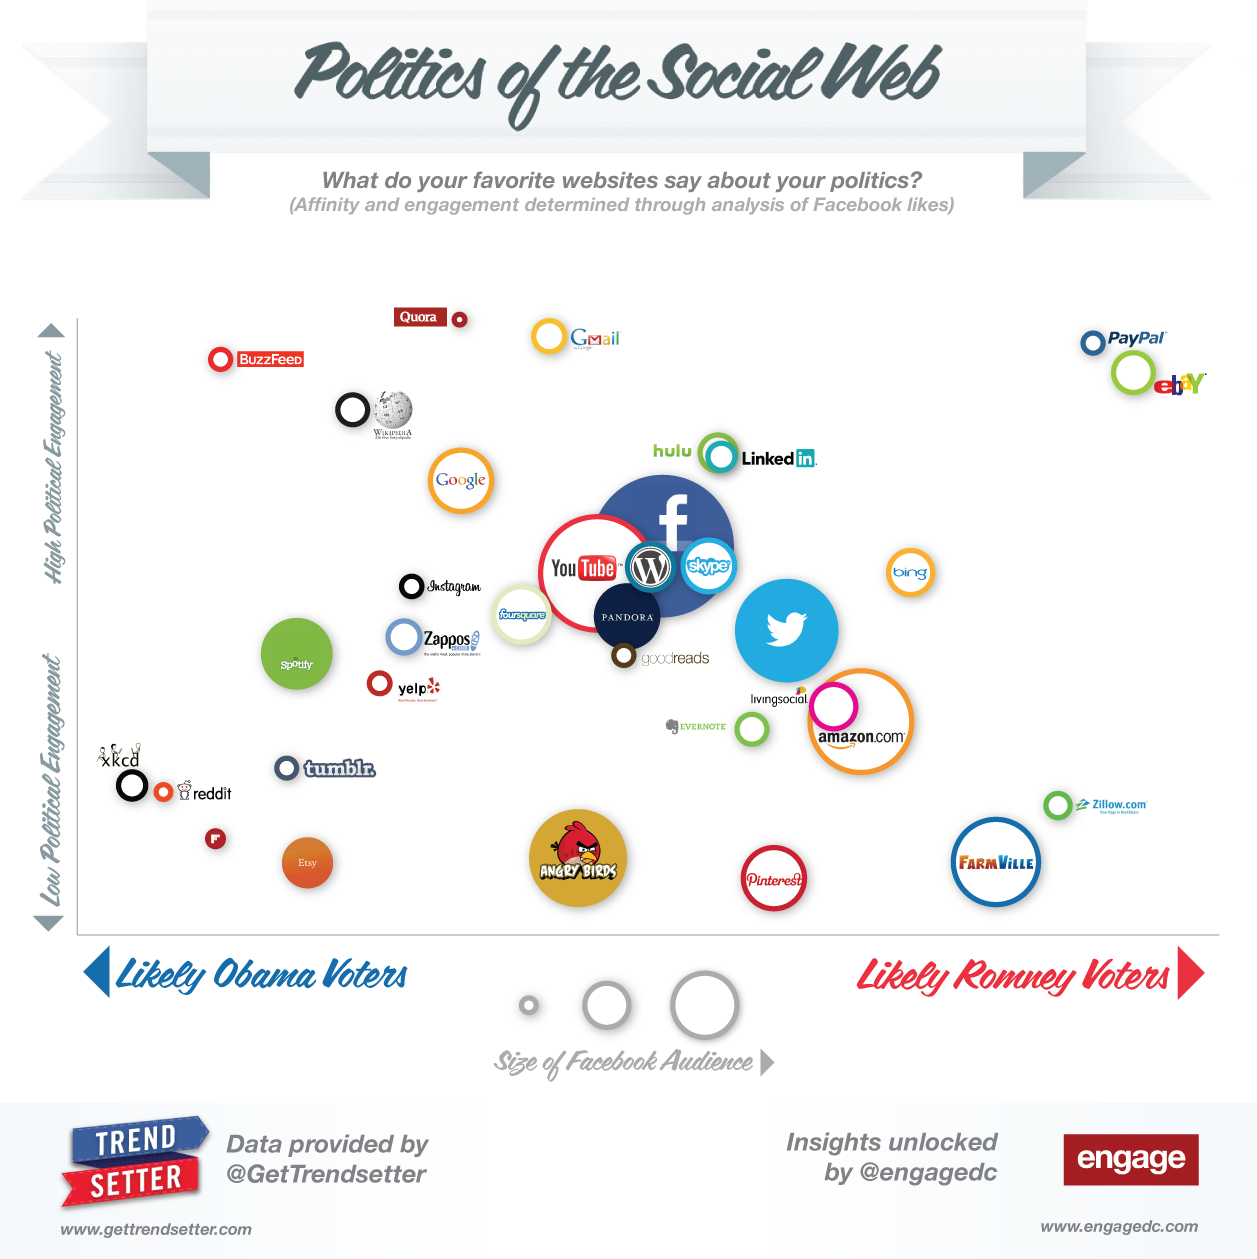 What Your Favorite Websites Say About Your Politics